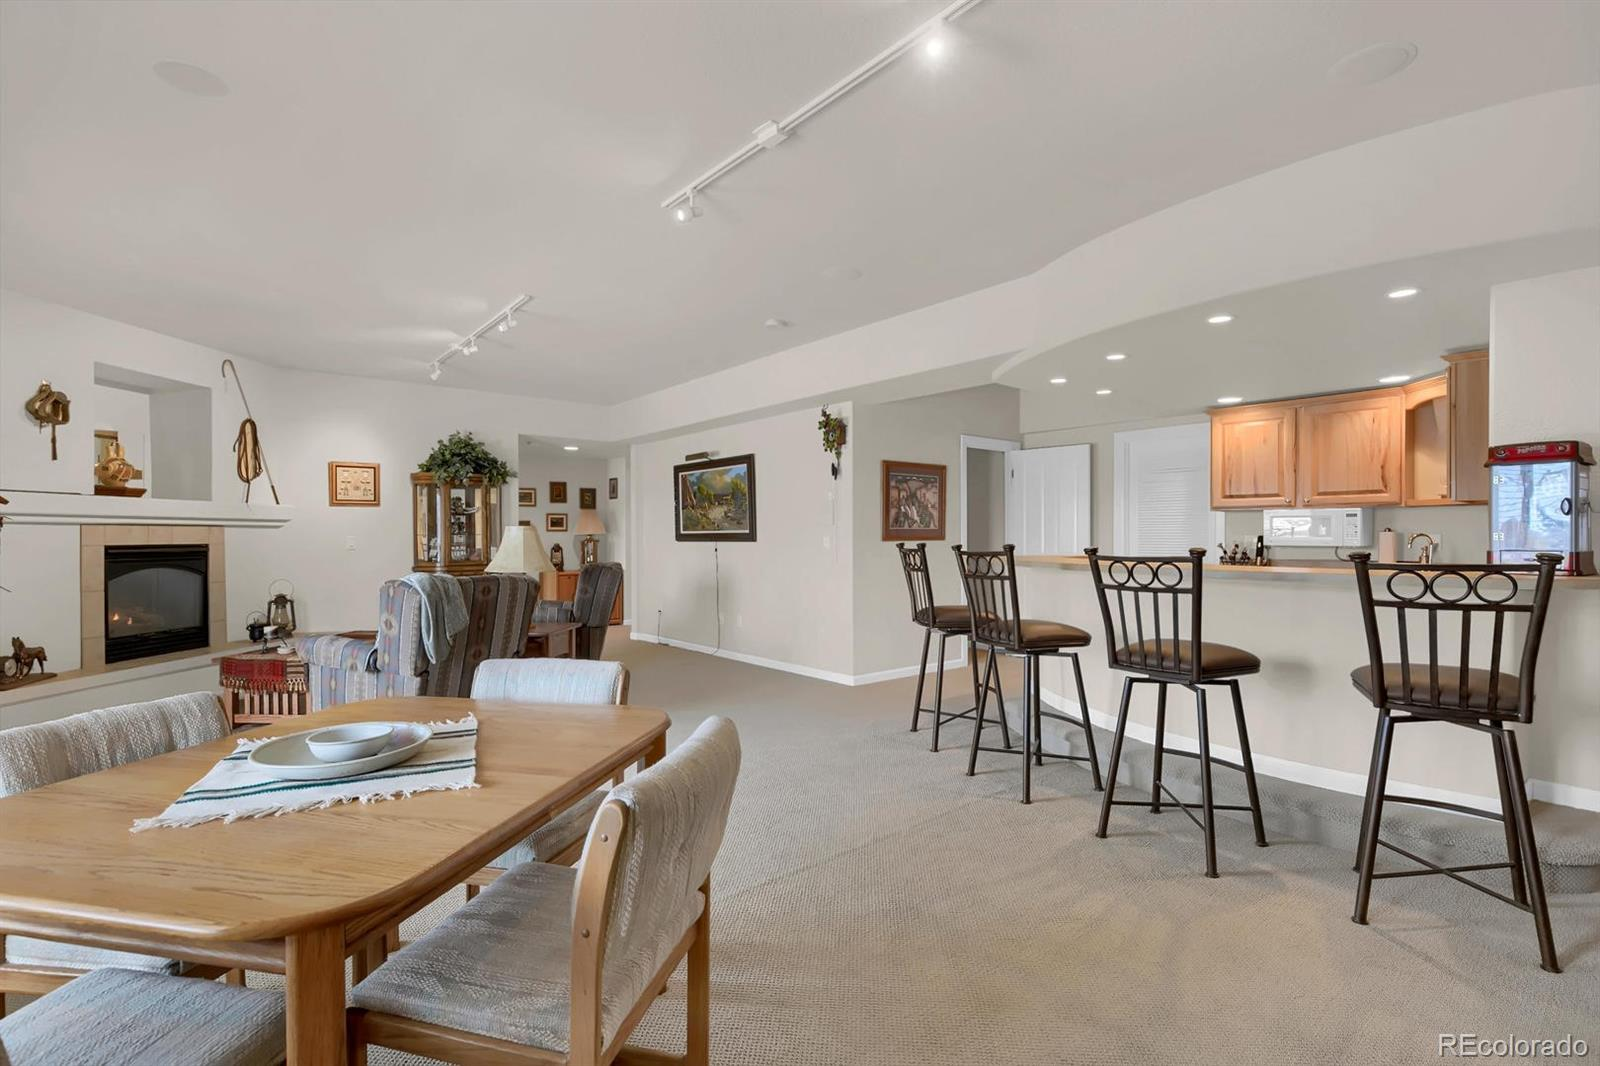 MLS# 5159811 - 34 - 207 Green Rock Place, Monument, CO 80132